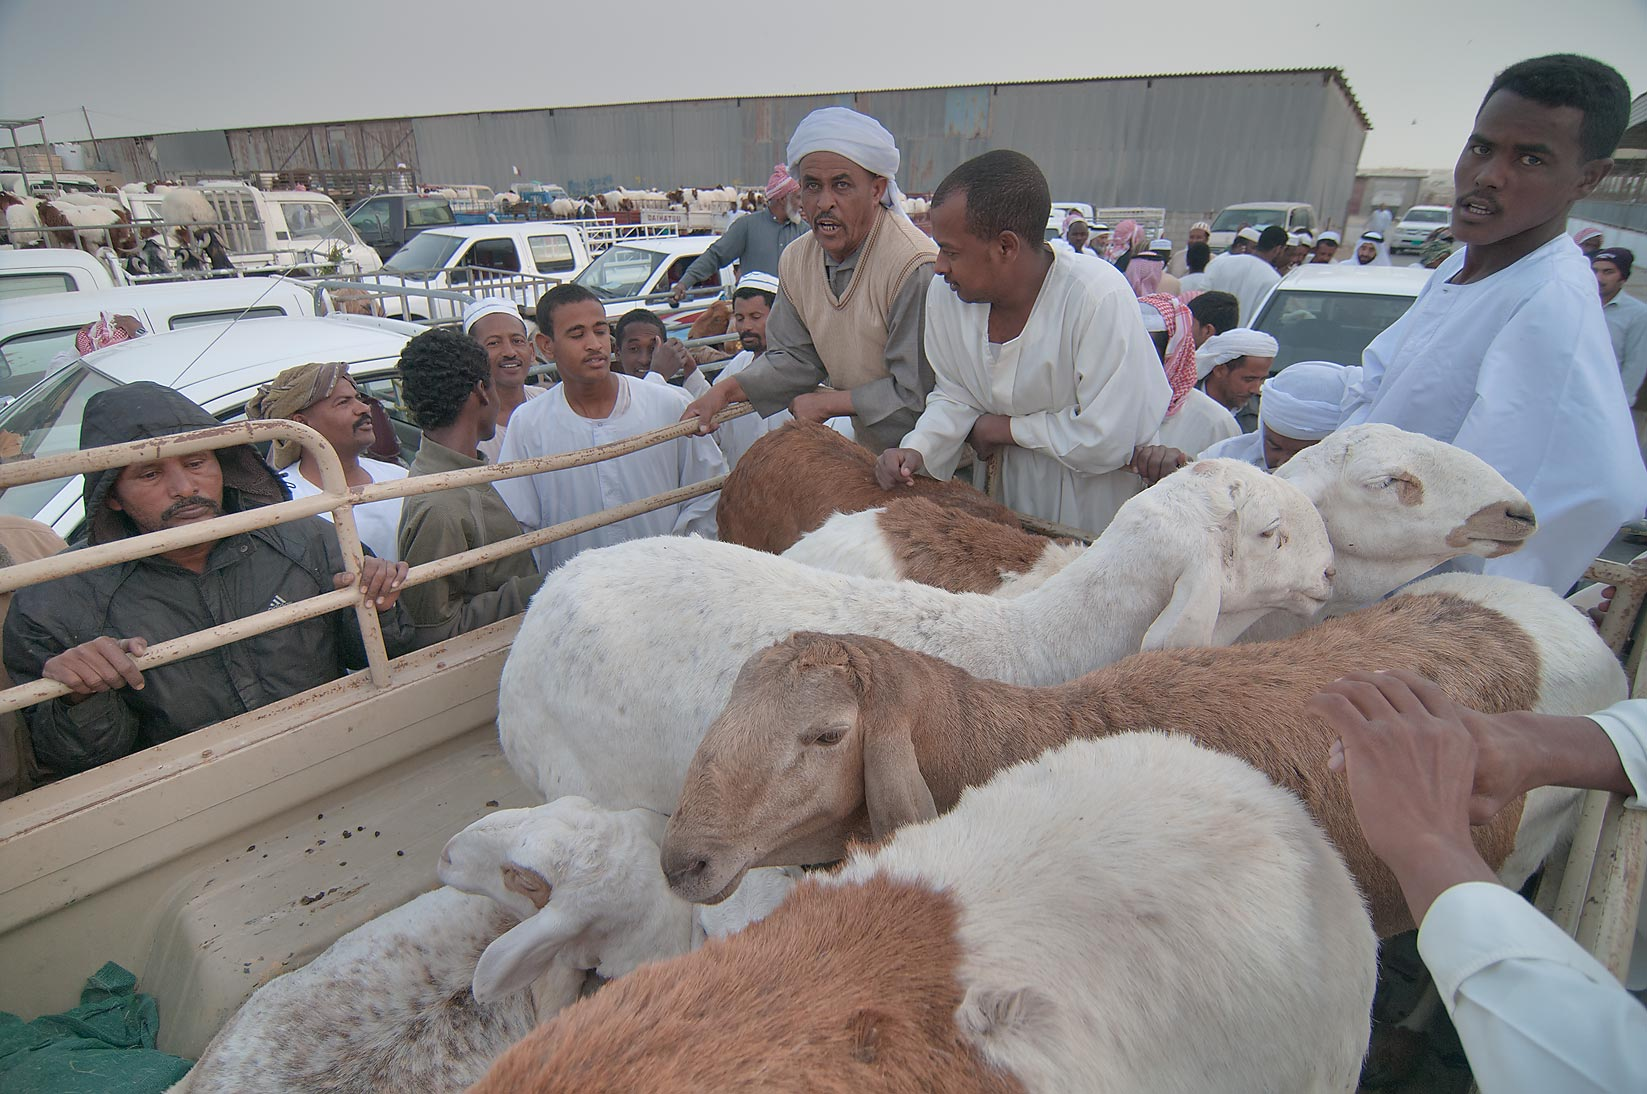 Goat auction at livestock market. Doha, Qatar